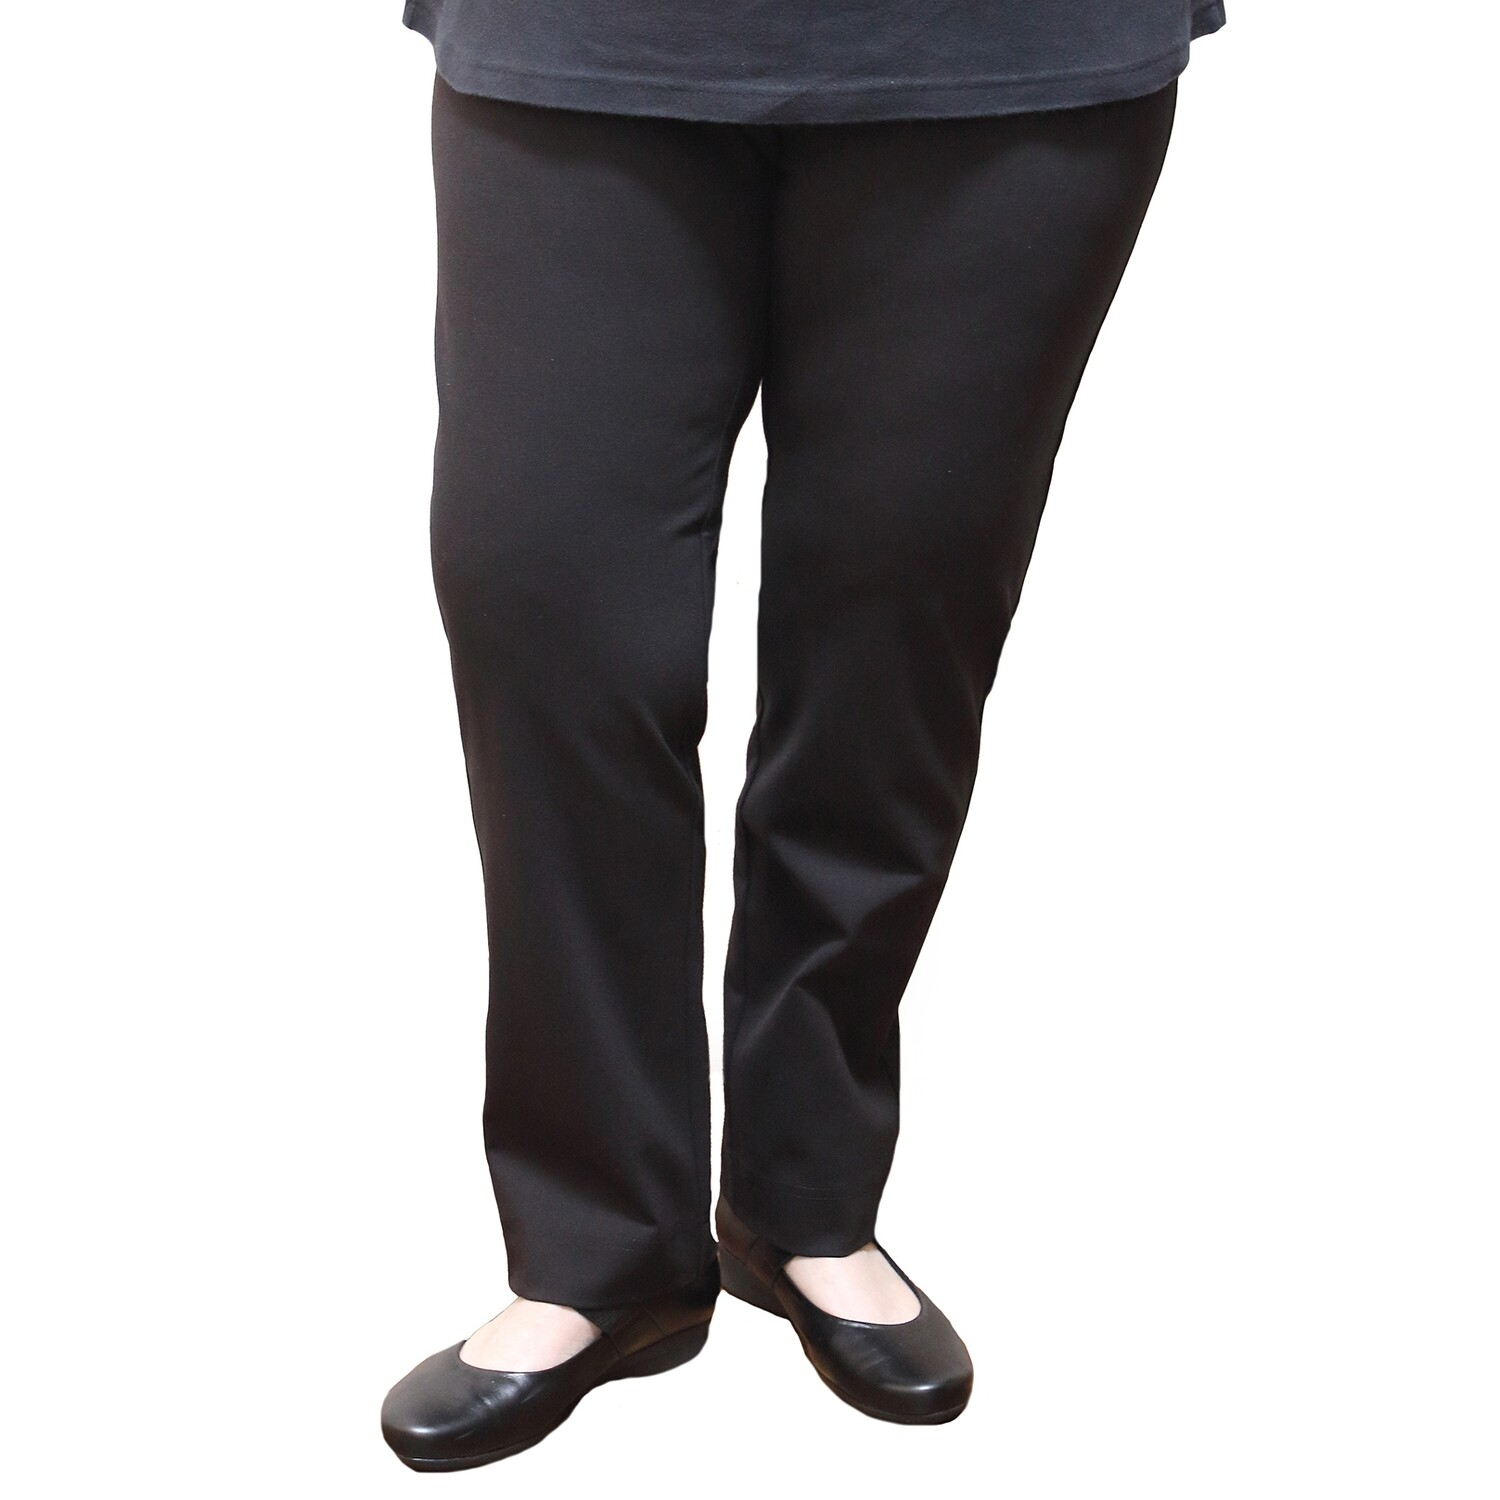 Straight Leg Stretch Winter Ponte Pants